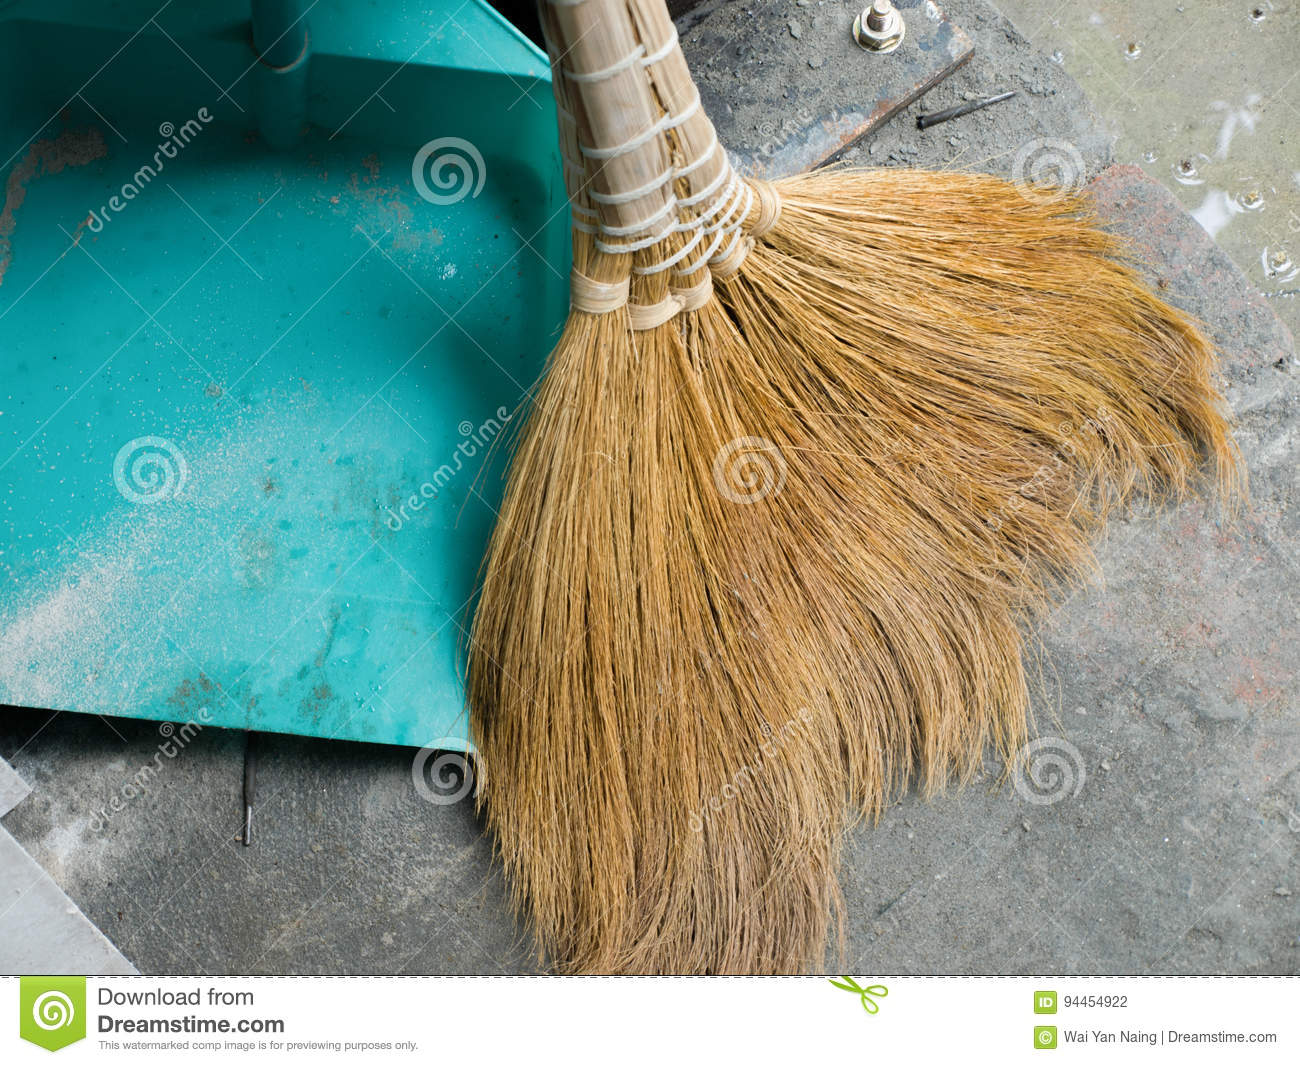 TYPICAL SOFT BROOM AND DUSTPAN Stock Photo - Image of color